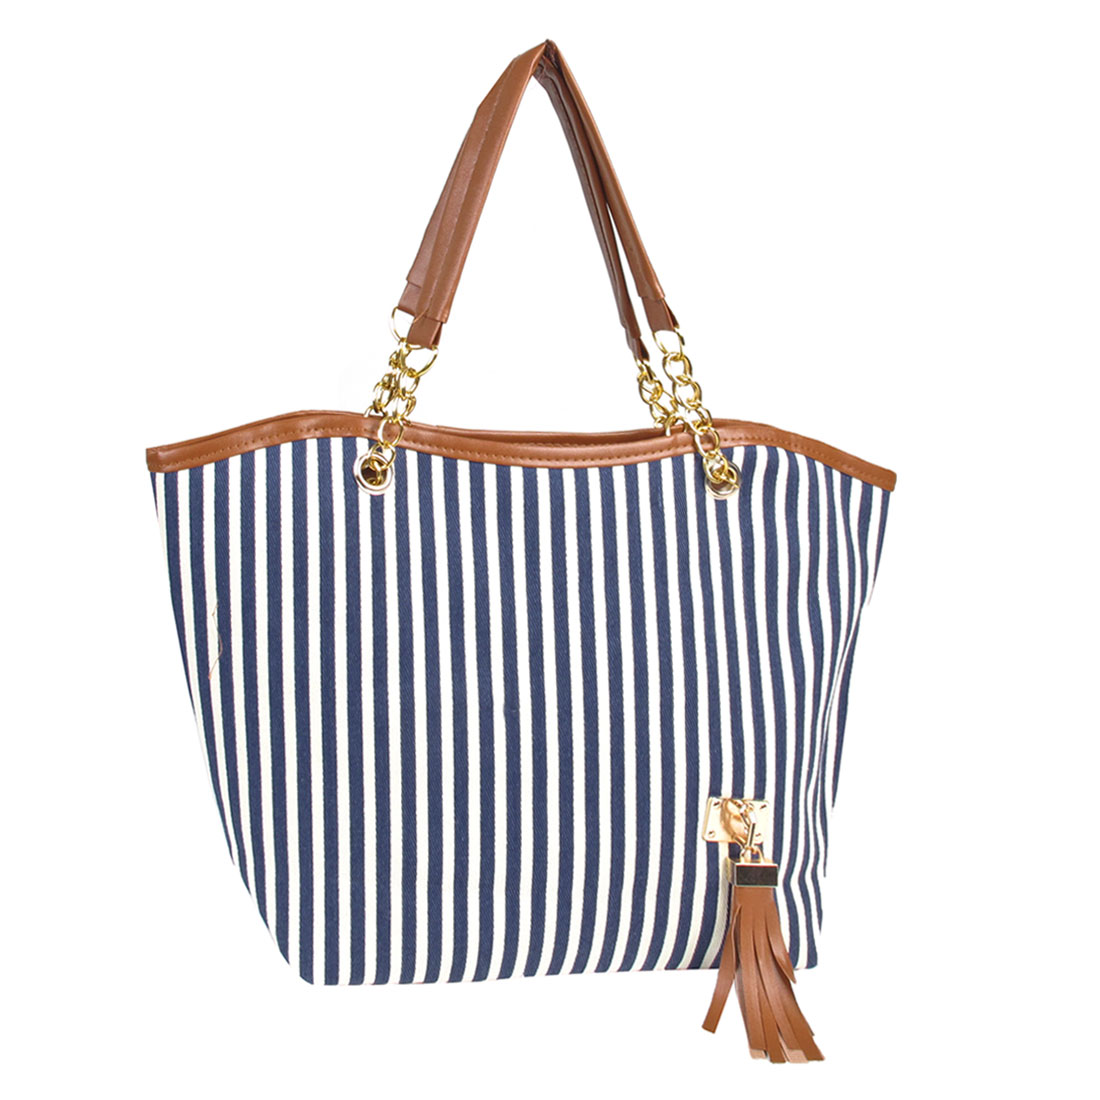 Blue White Stripes Pattern Zipper Closure Handbag Shoulder Bag for Women